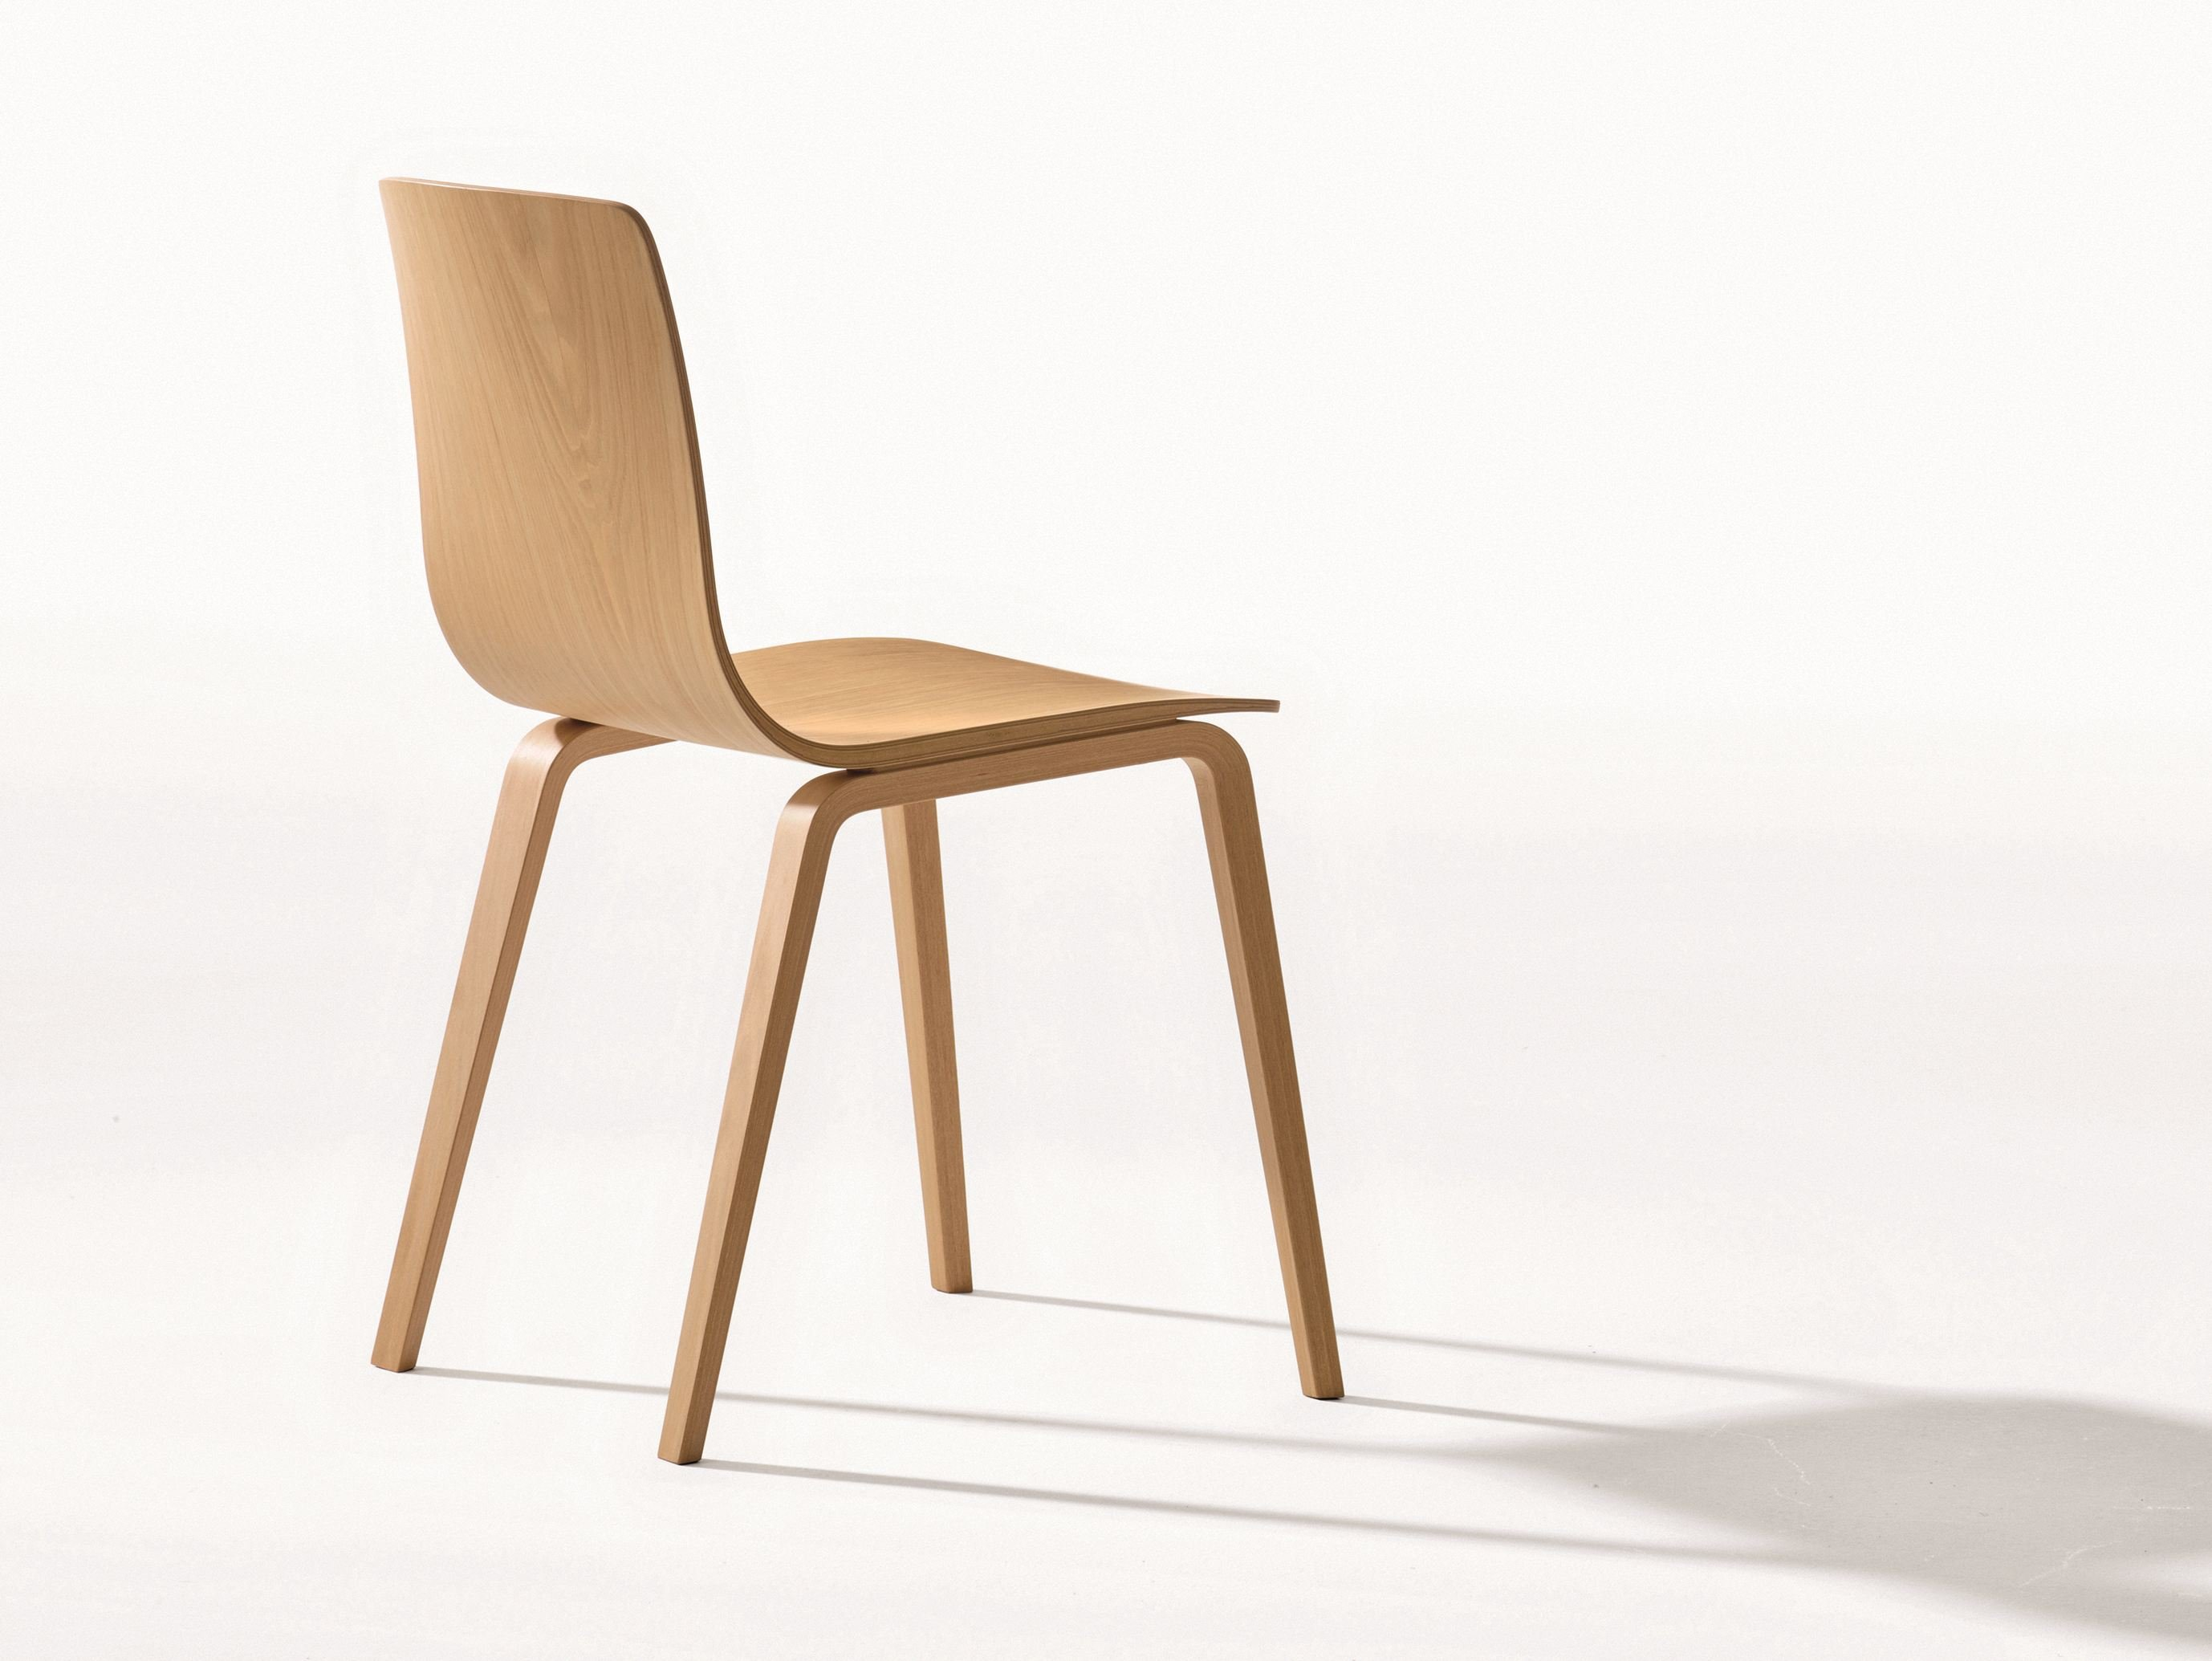 Stackable wooden chair aava collection by arper design antti kotilainen - Chaises blanches en bois ...